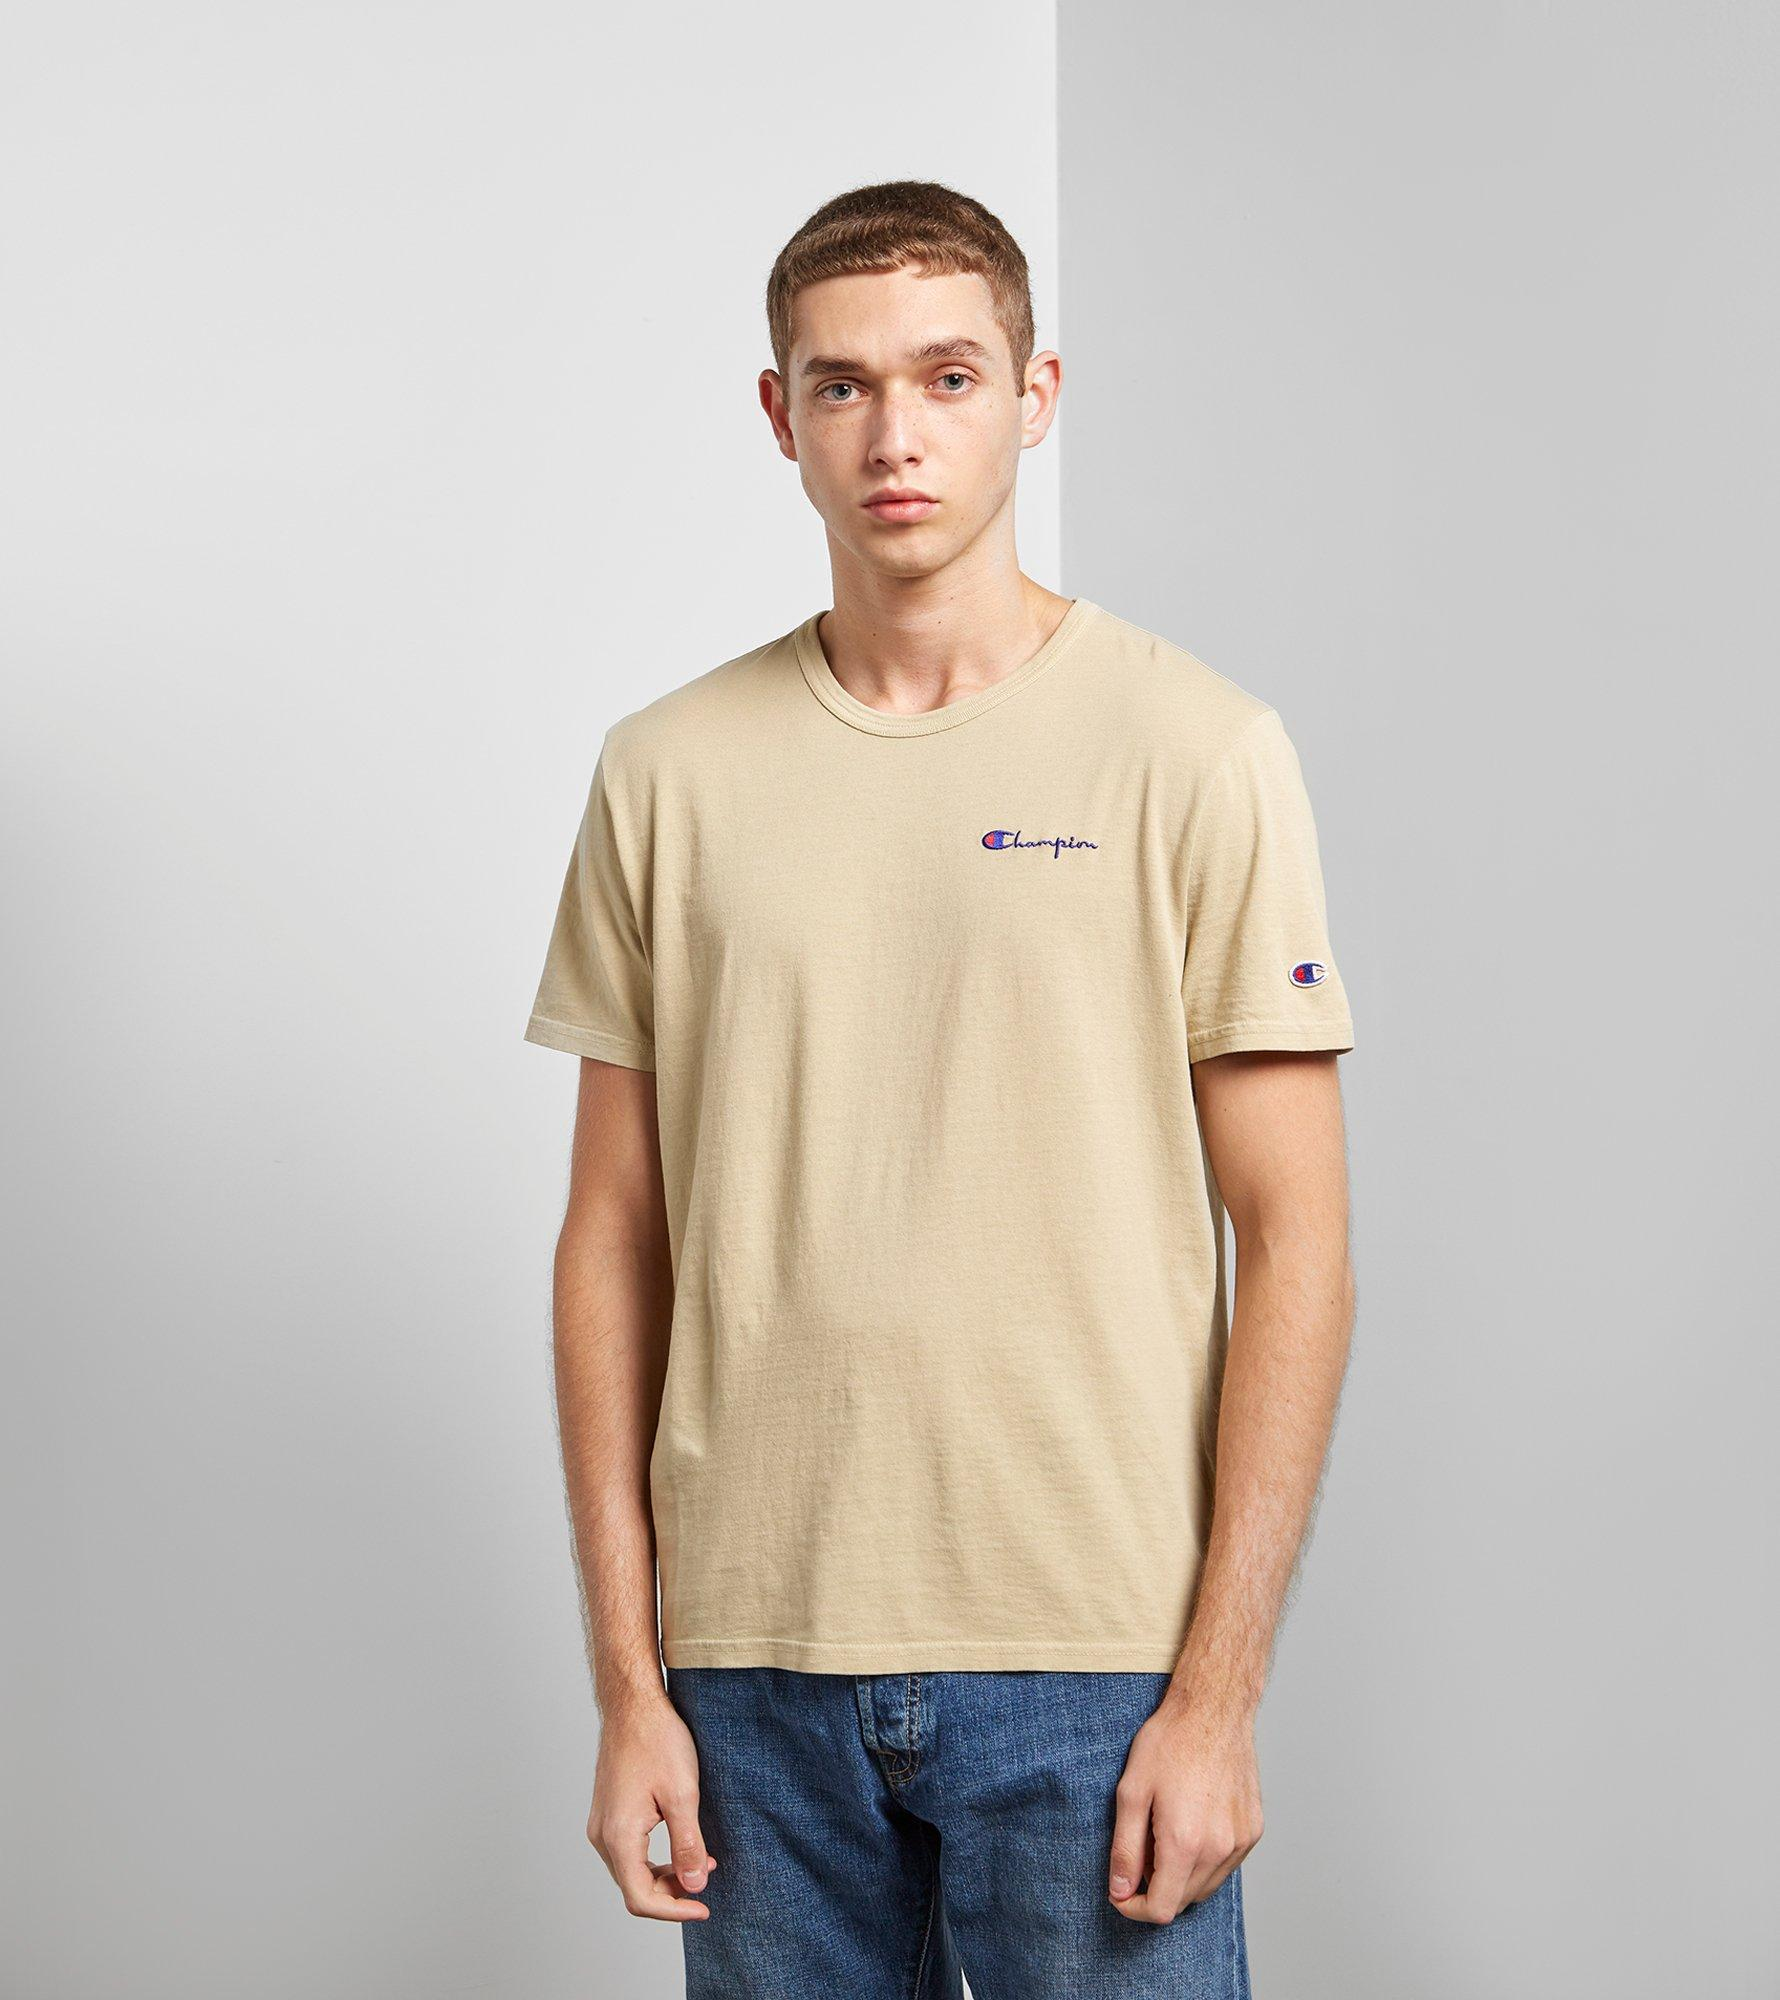 4b4d567b8663 Lyst - Champion Crew T-shirt - Size? Exclusive in Brown for Men